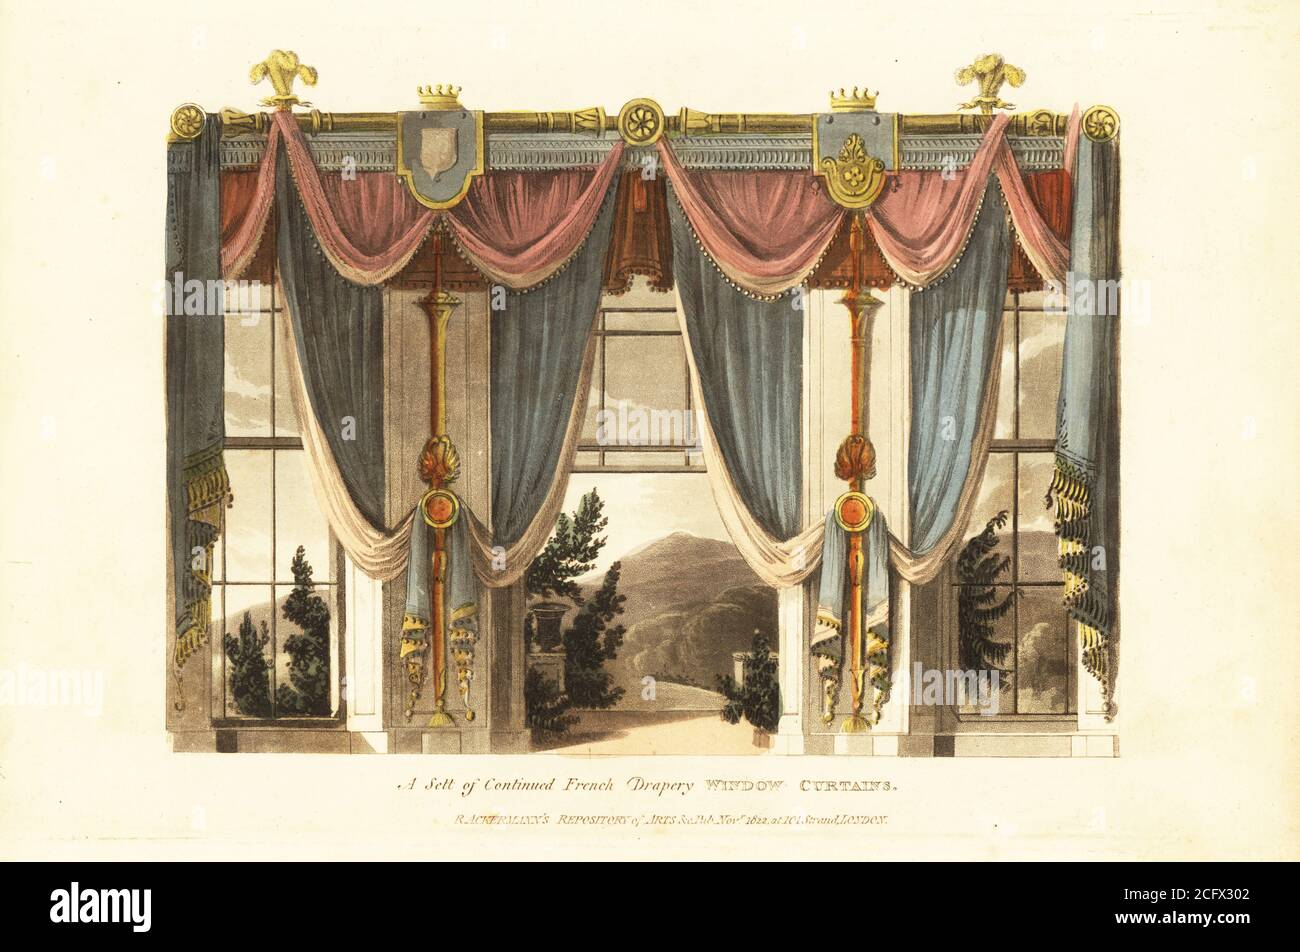 https www alamy com a sett of continued french drapery window curtains luxurious window curtains and drapes hung from a gilt curtain rod decorated with regents plumes of feathers and crowns handcoloured copperplate engraving from the upholsterers and cabinet makers repository consisting of seventy six designs of modern and fashionable furniture rudolph ackermann london 1830 image371210674 html